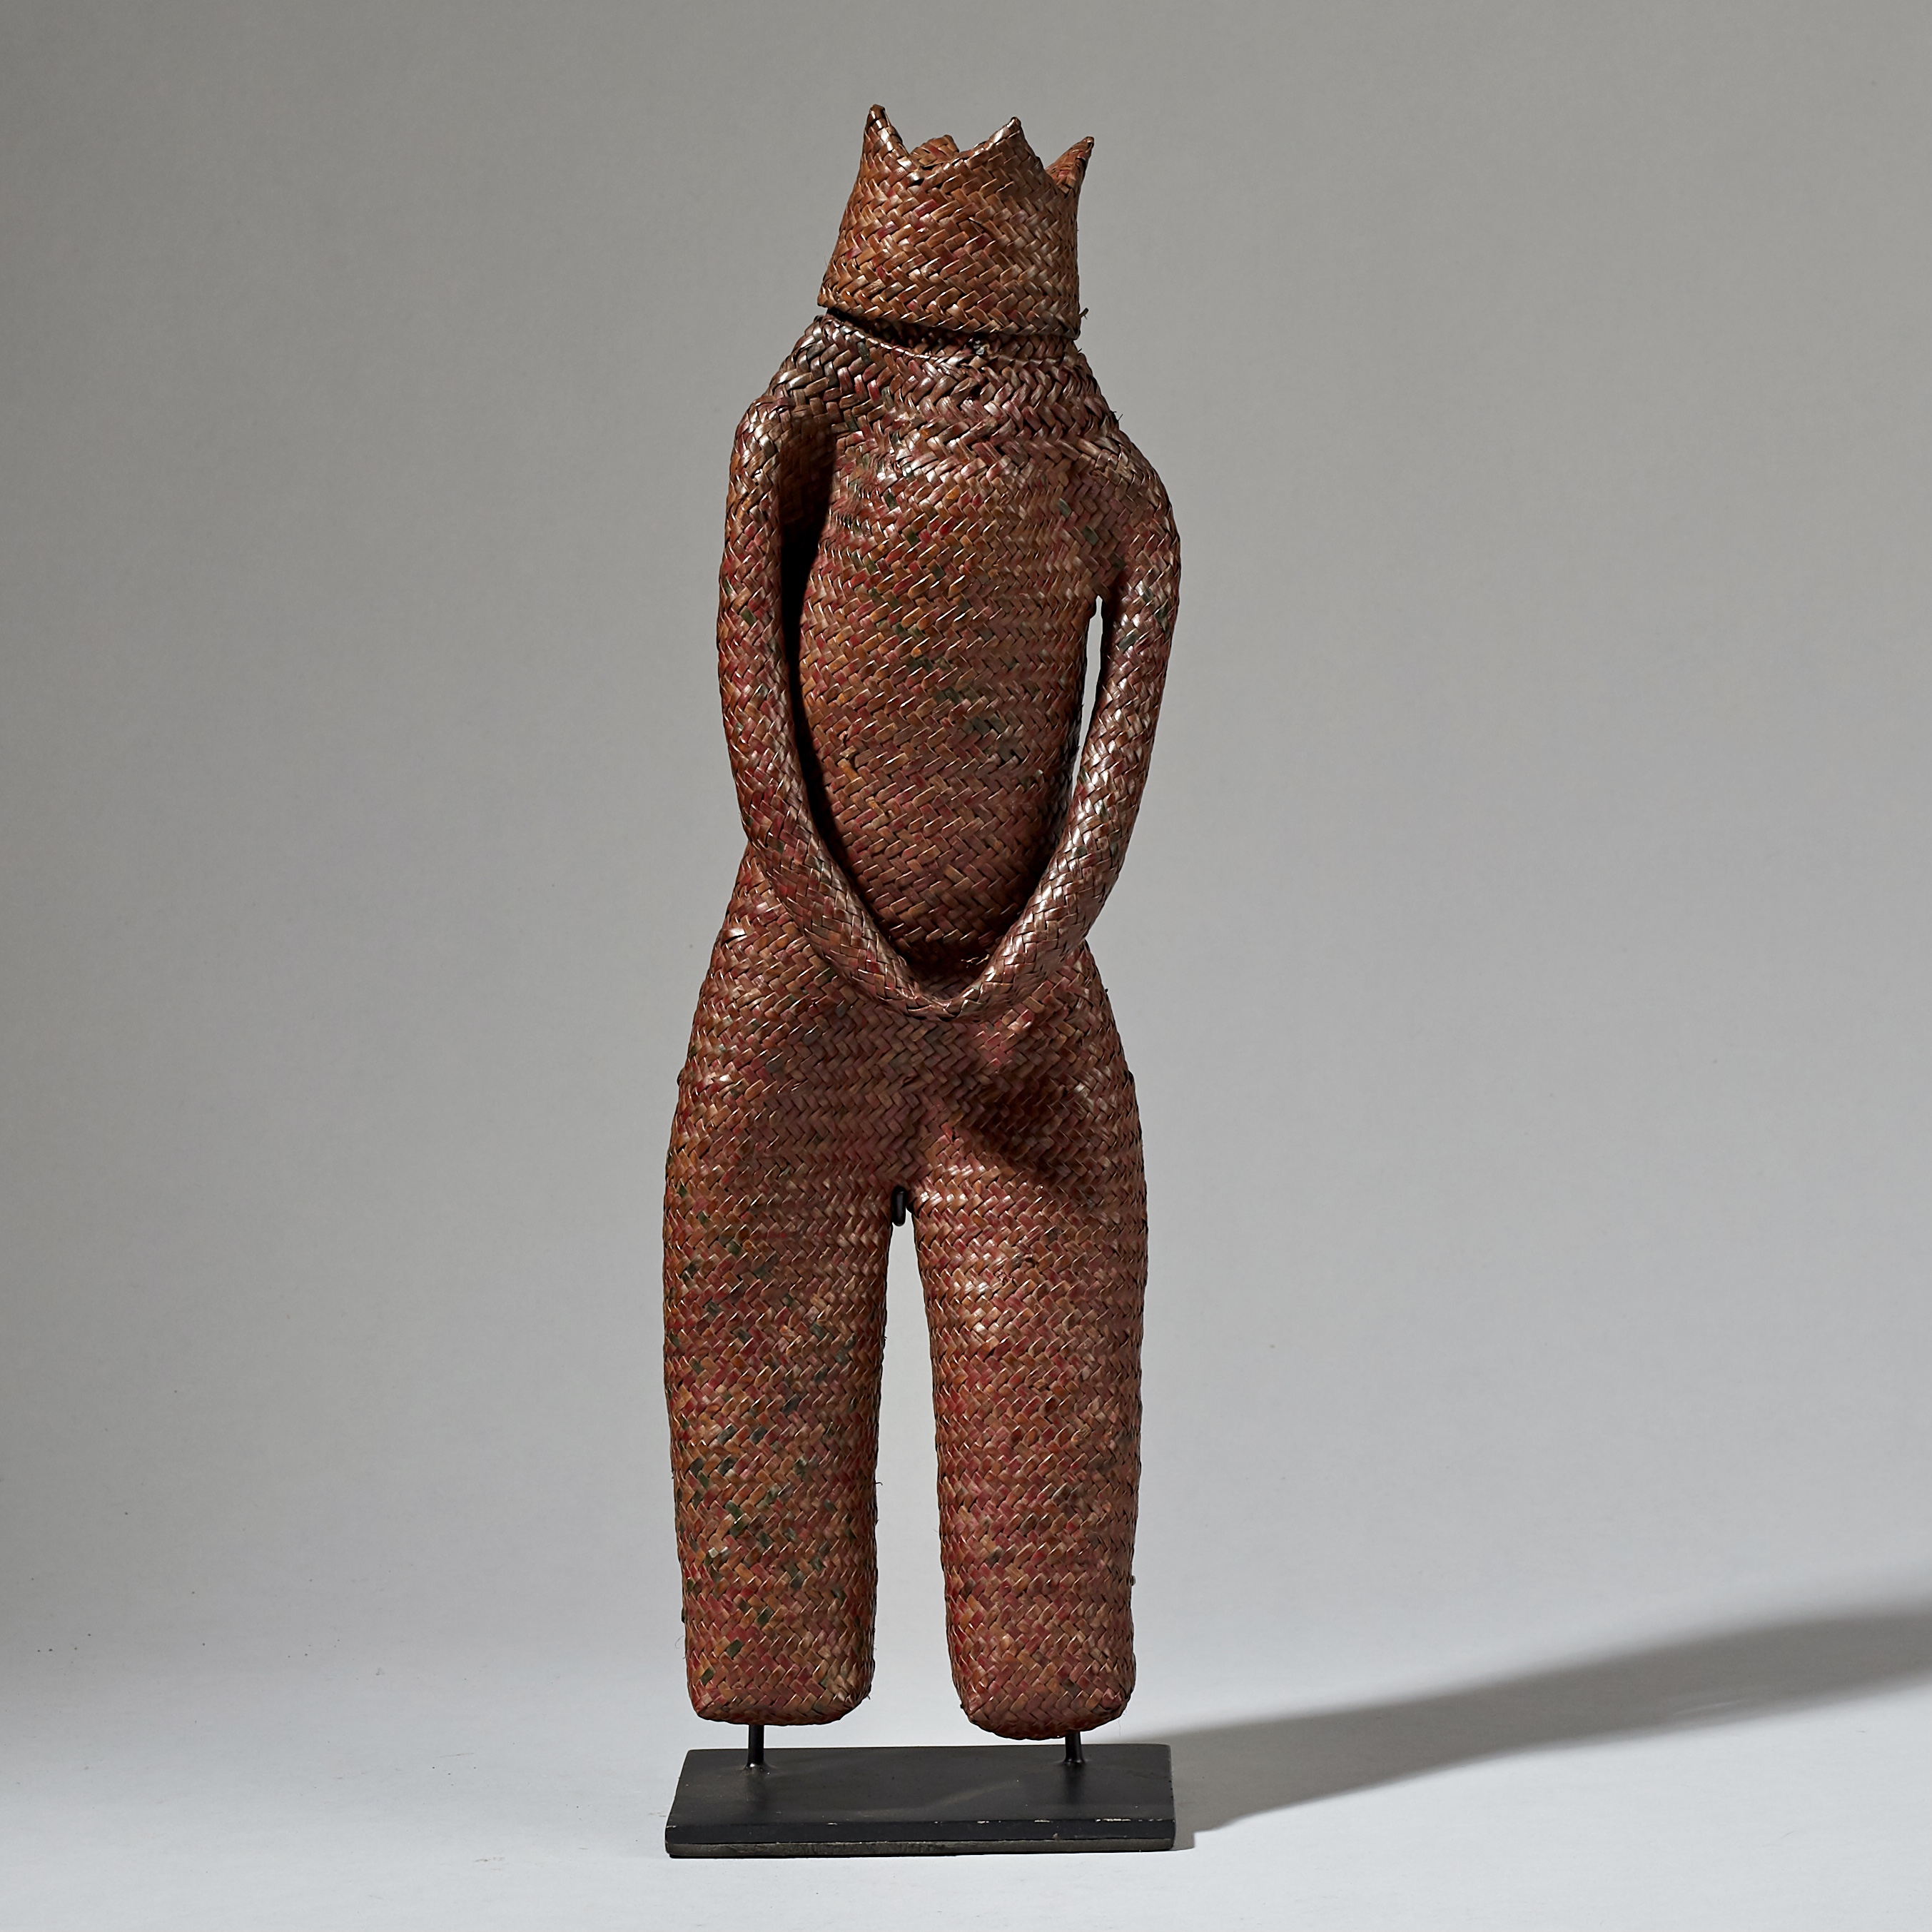 A RARE WOVEN ANCESTRAL GUARDIAN THAT PROTECTS RICE SEEDS, INDONESIA ( No 3239 )